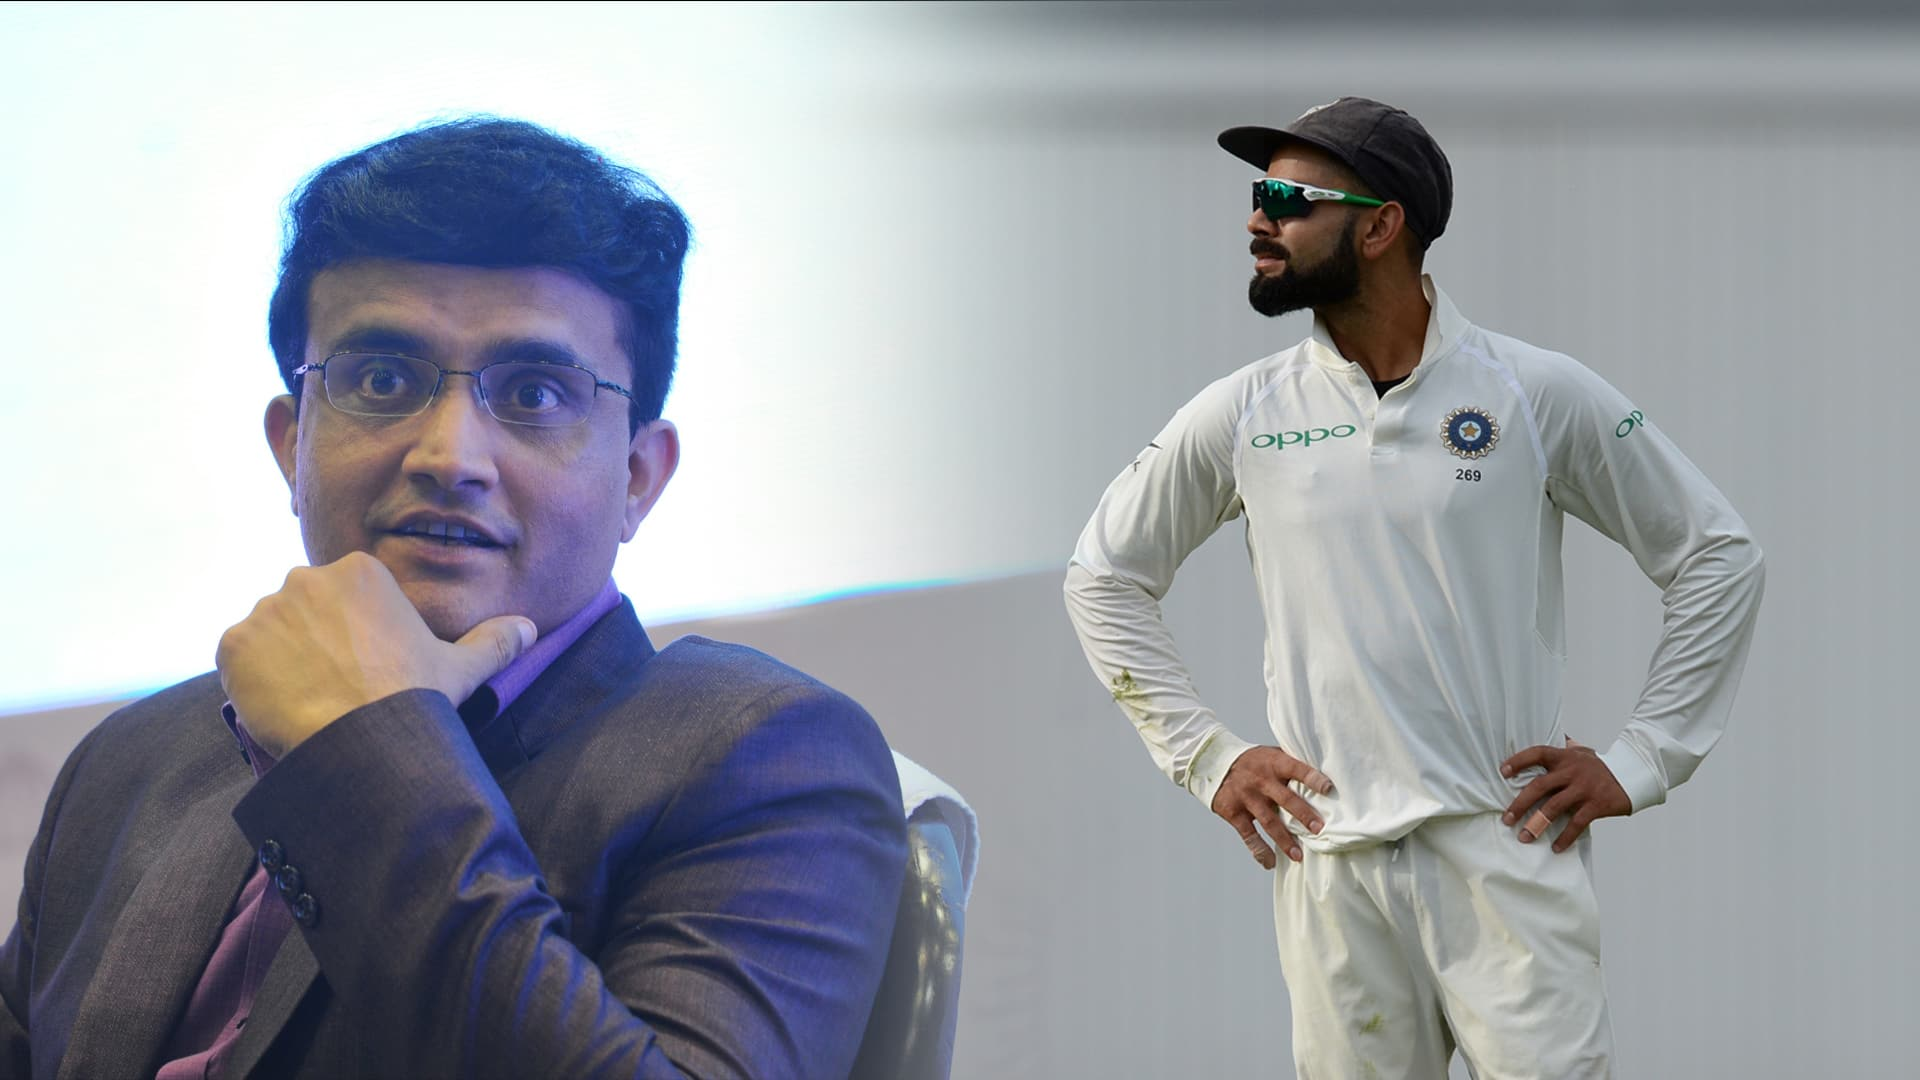 Sourav Ganguly explains why players struggle in overseas Tests, wants coach to take more responsibility